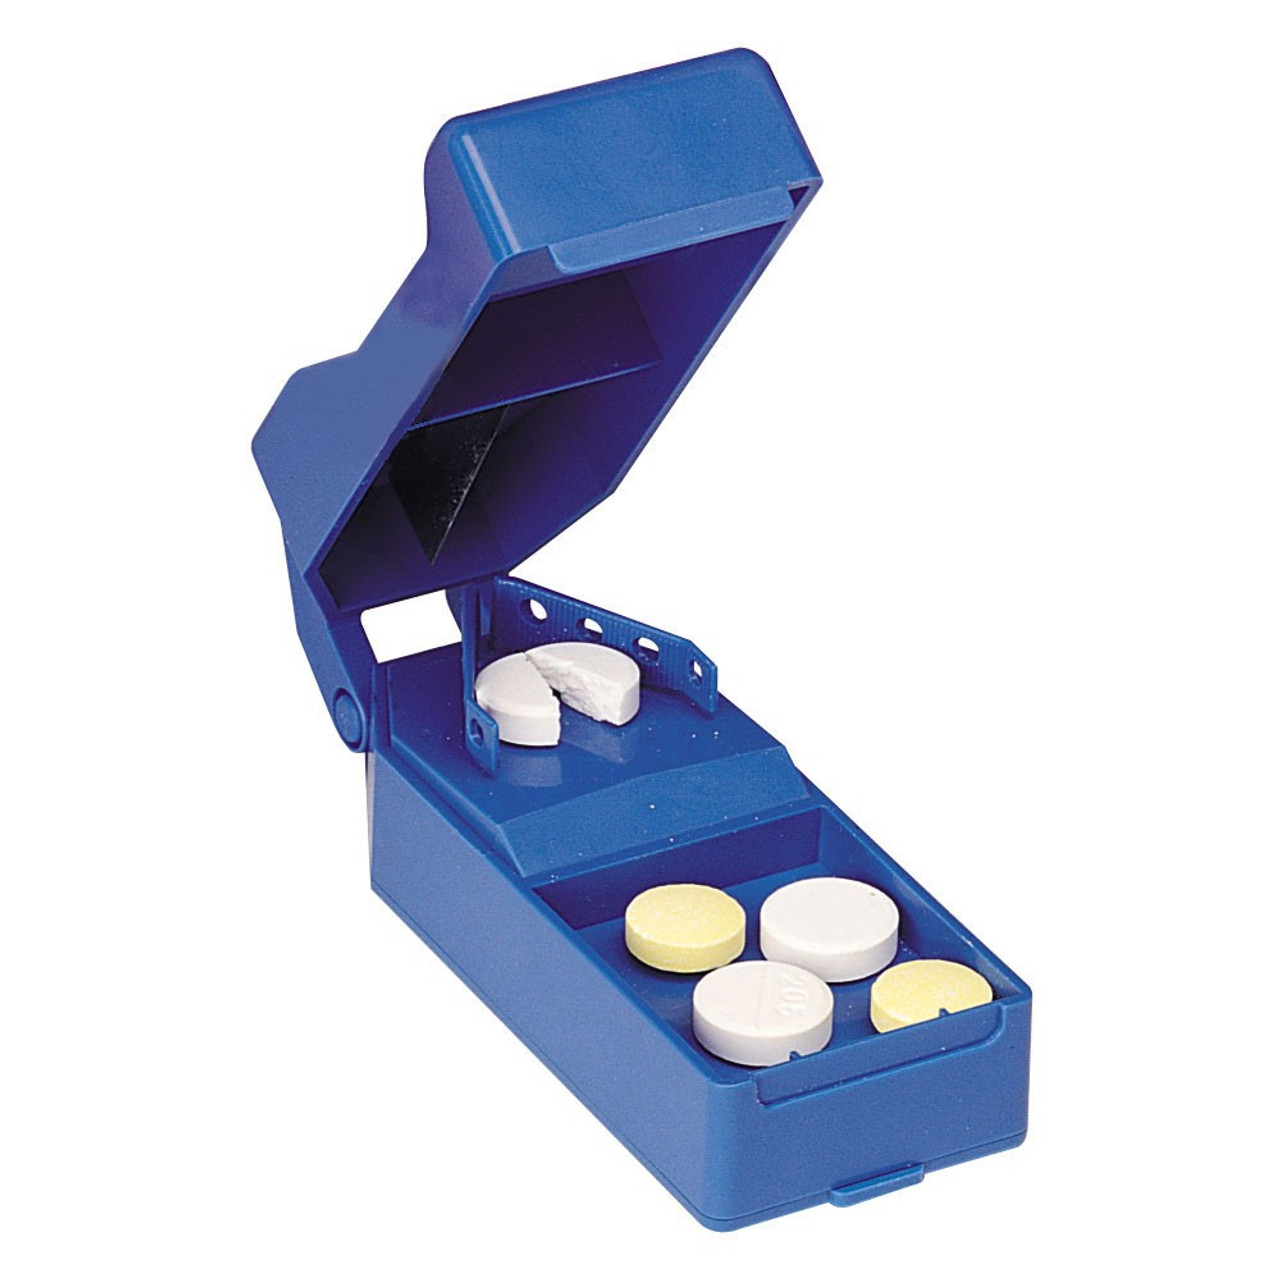 Has a compartment to store pills until needed